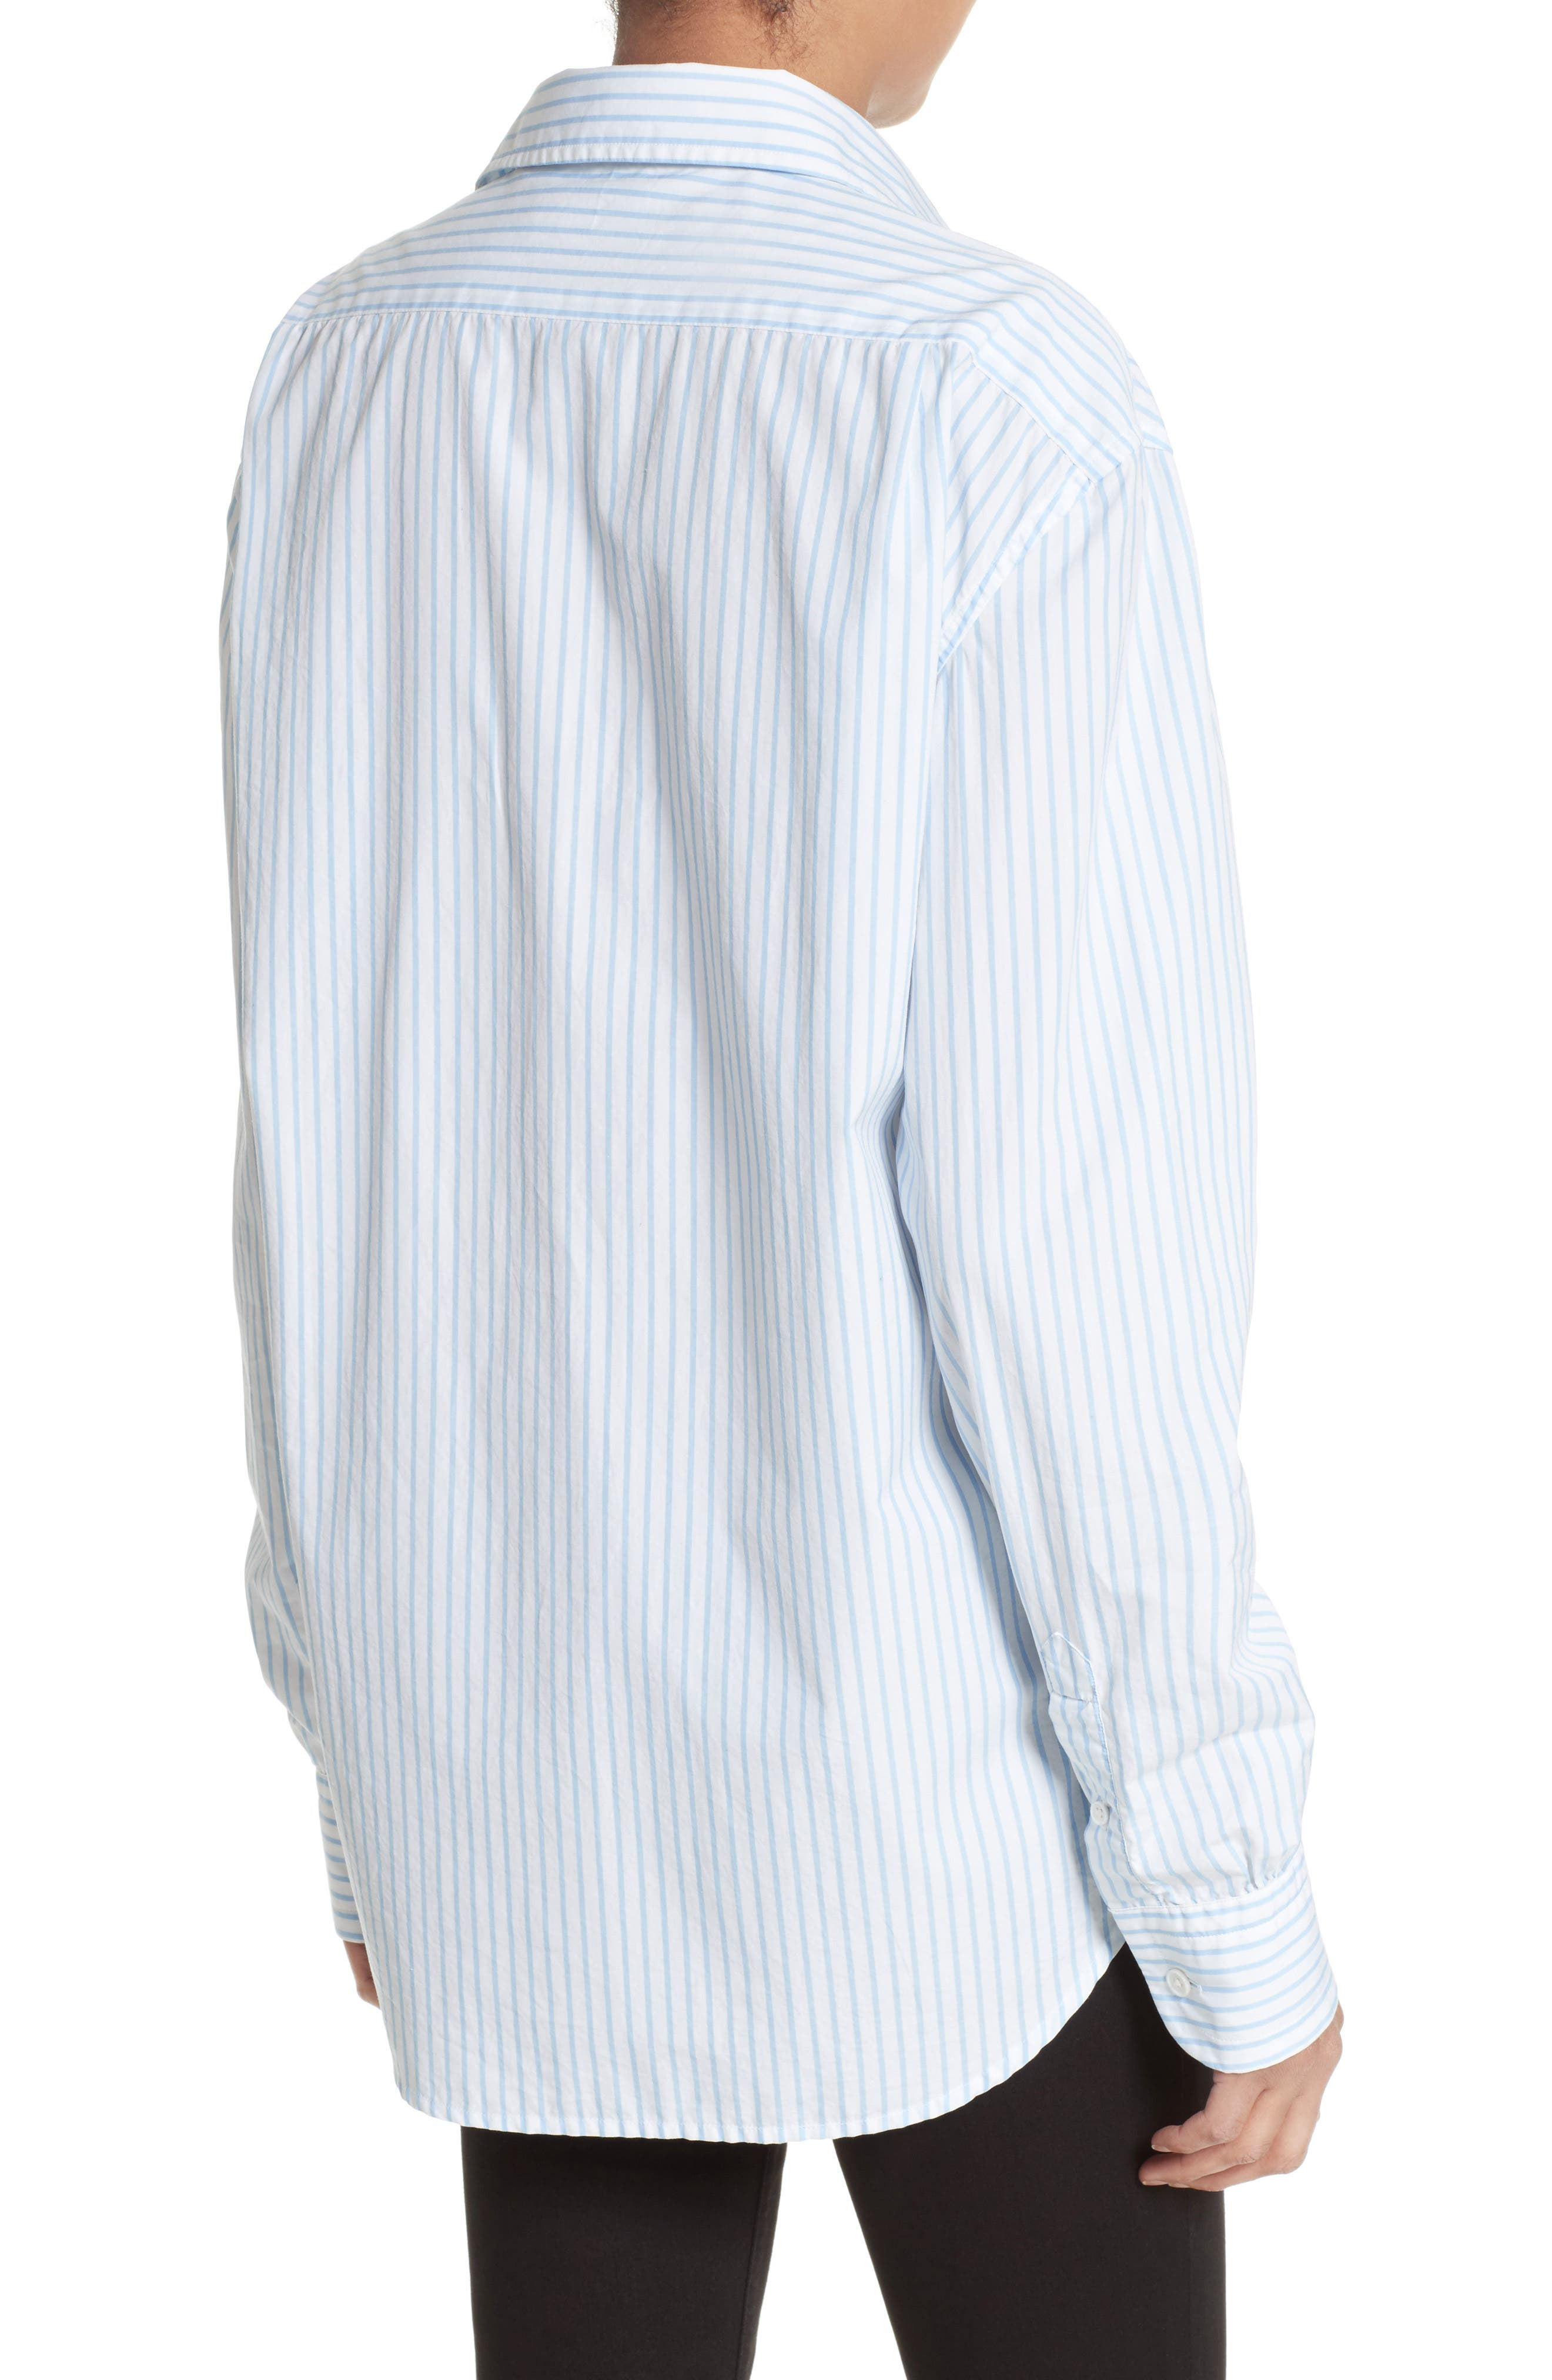 Stripe Poplin Shirt,                             Alternate thumbnail 2, color,                             161